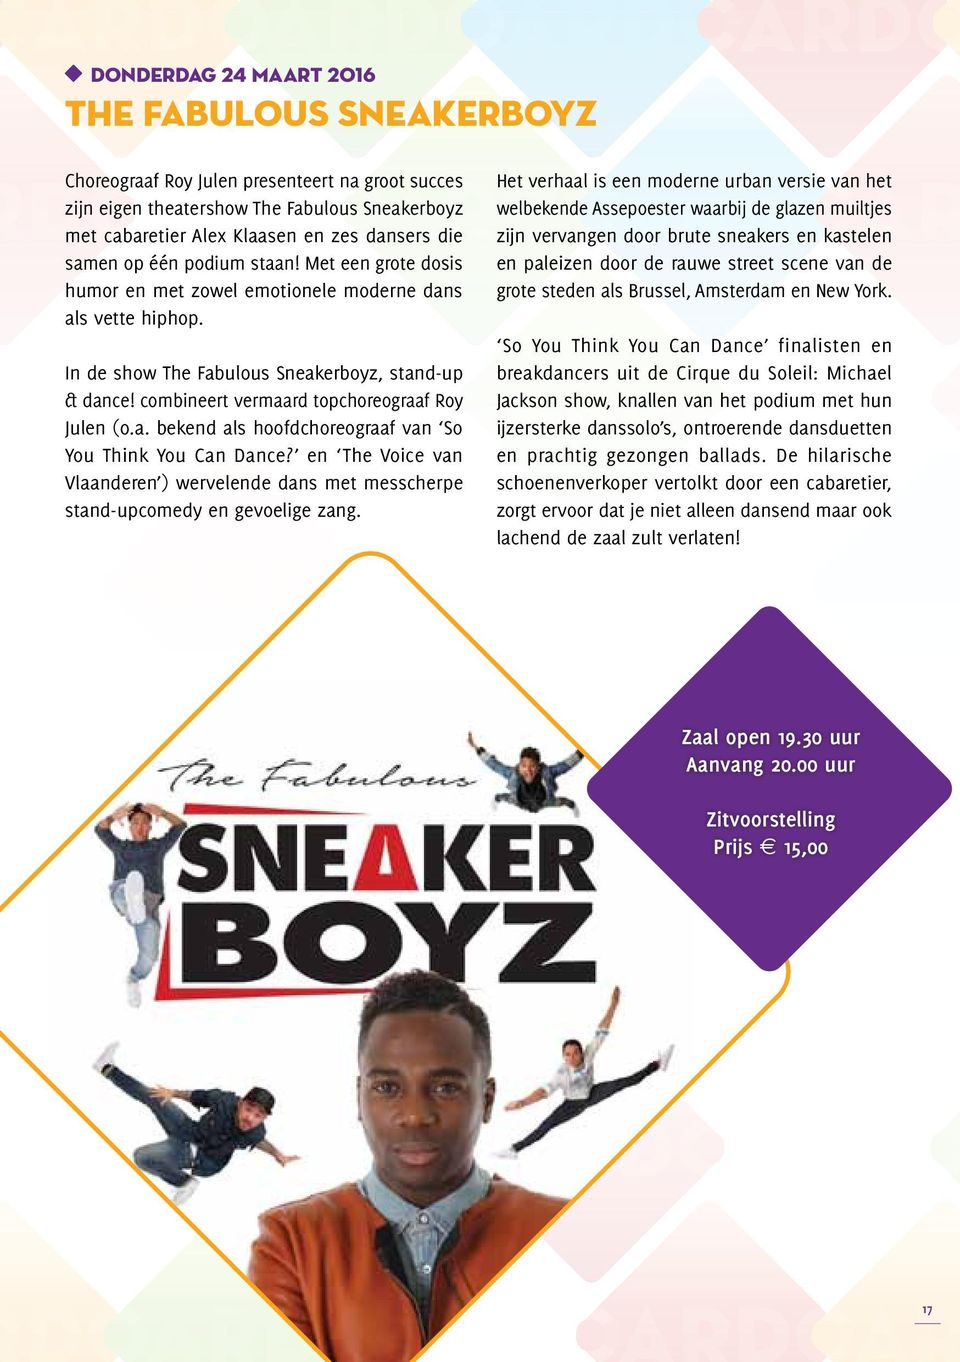 combineert vermaard topchoreograaf Roy Julen (o.a. bekend als hoofdchoreograaf van So You Think You Can Dance?